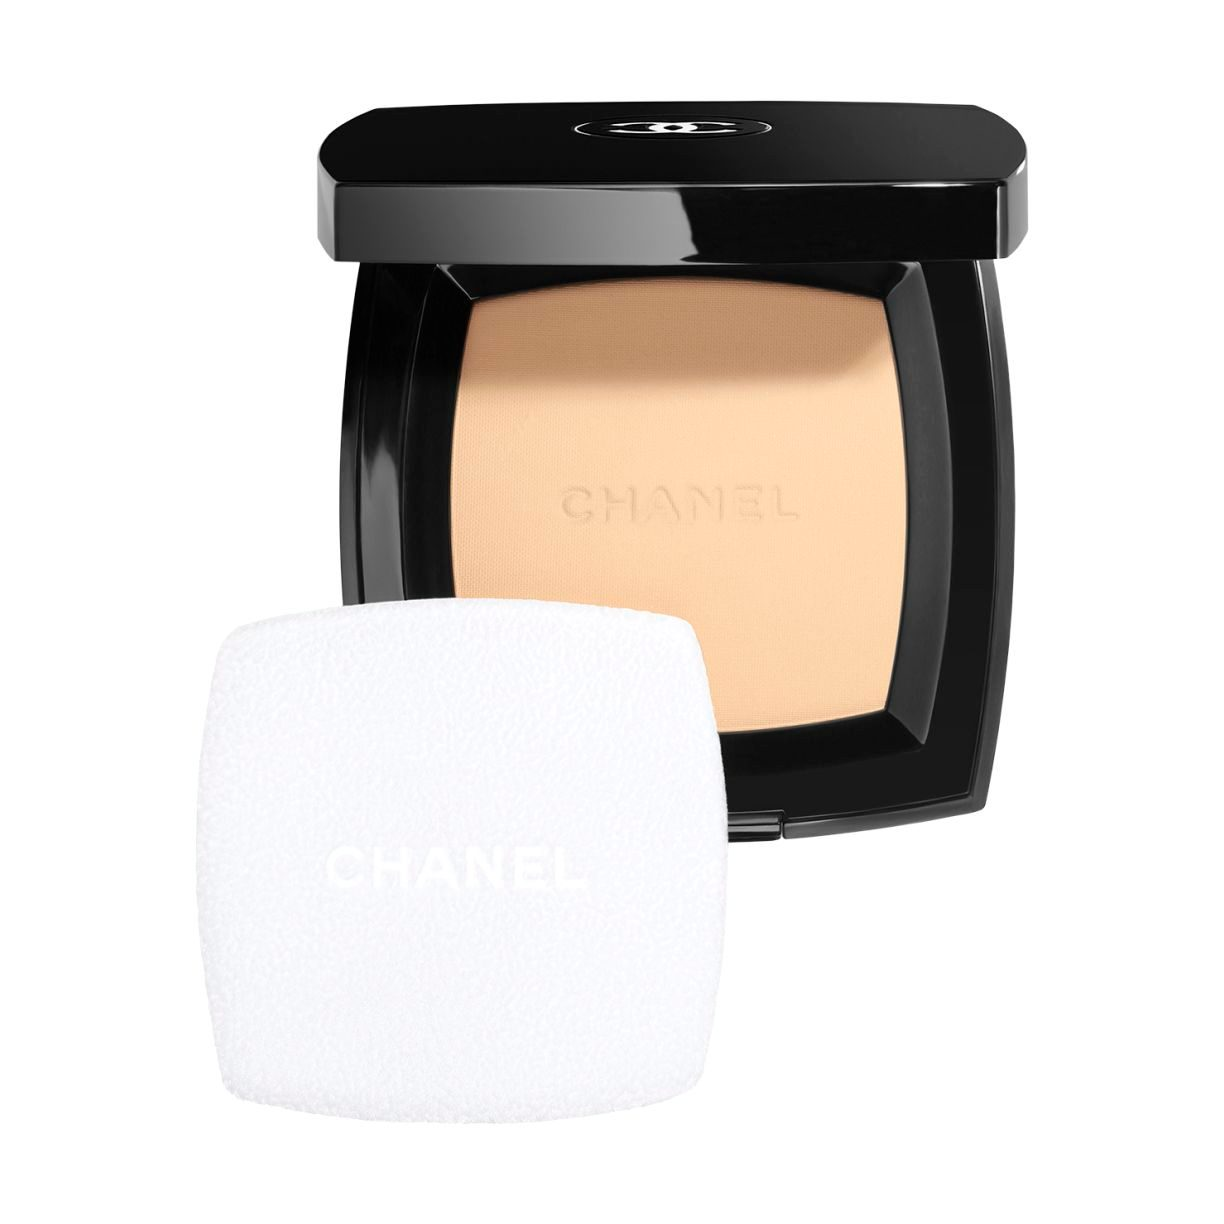 POUDRE UNIVERSELLE COMPACTE NATURAL FINISH PRESSED POWDER 30 NATUREL - TRANSLUCENT 2 15G